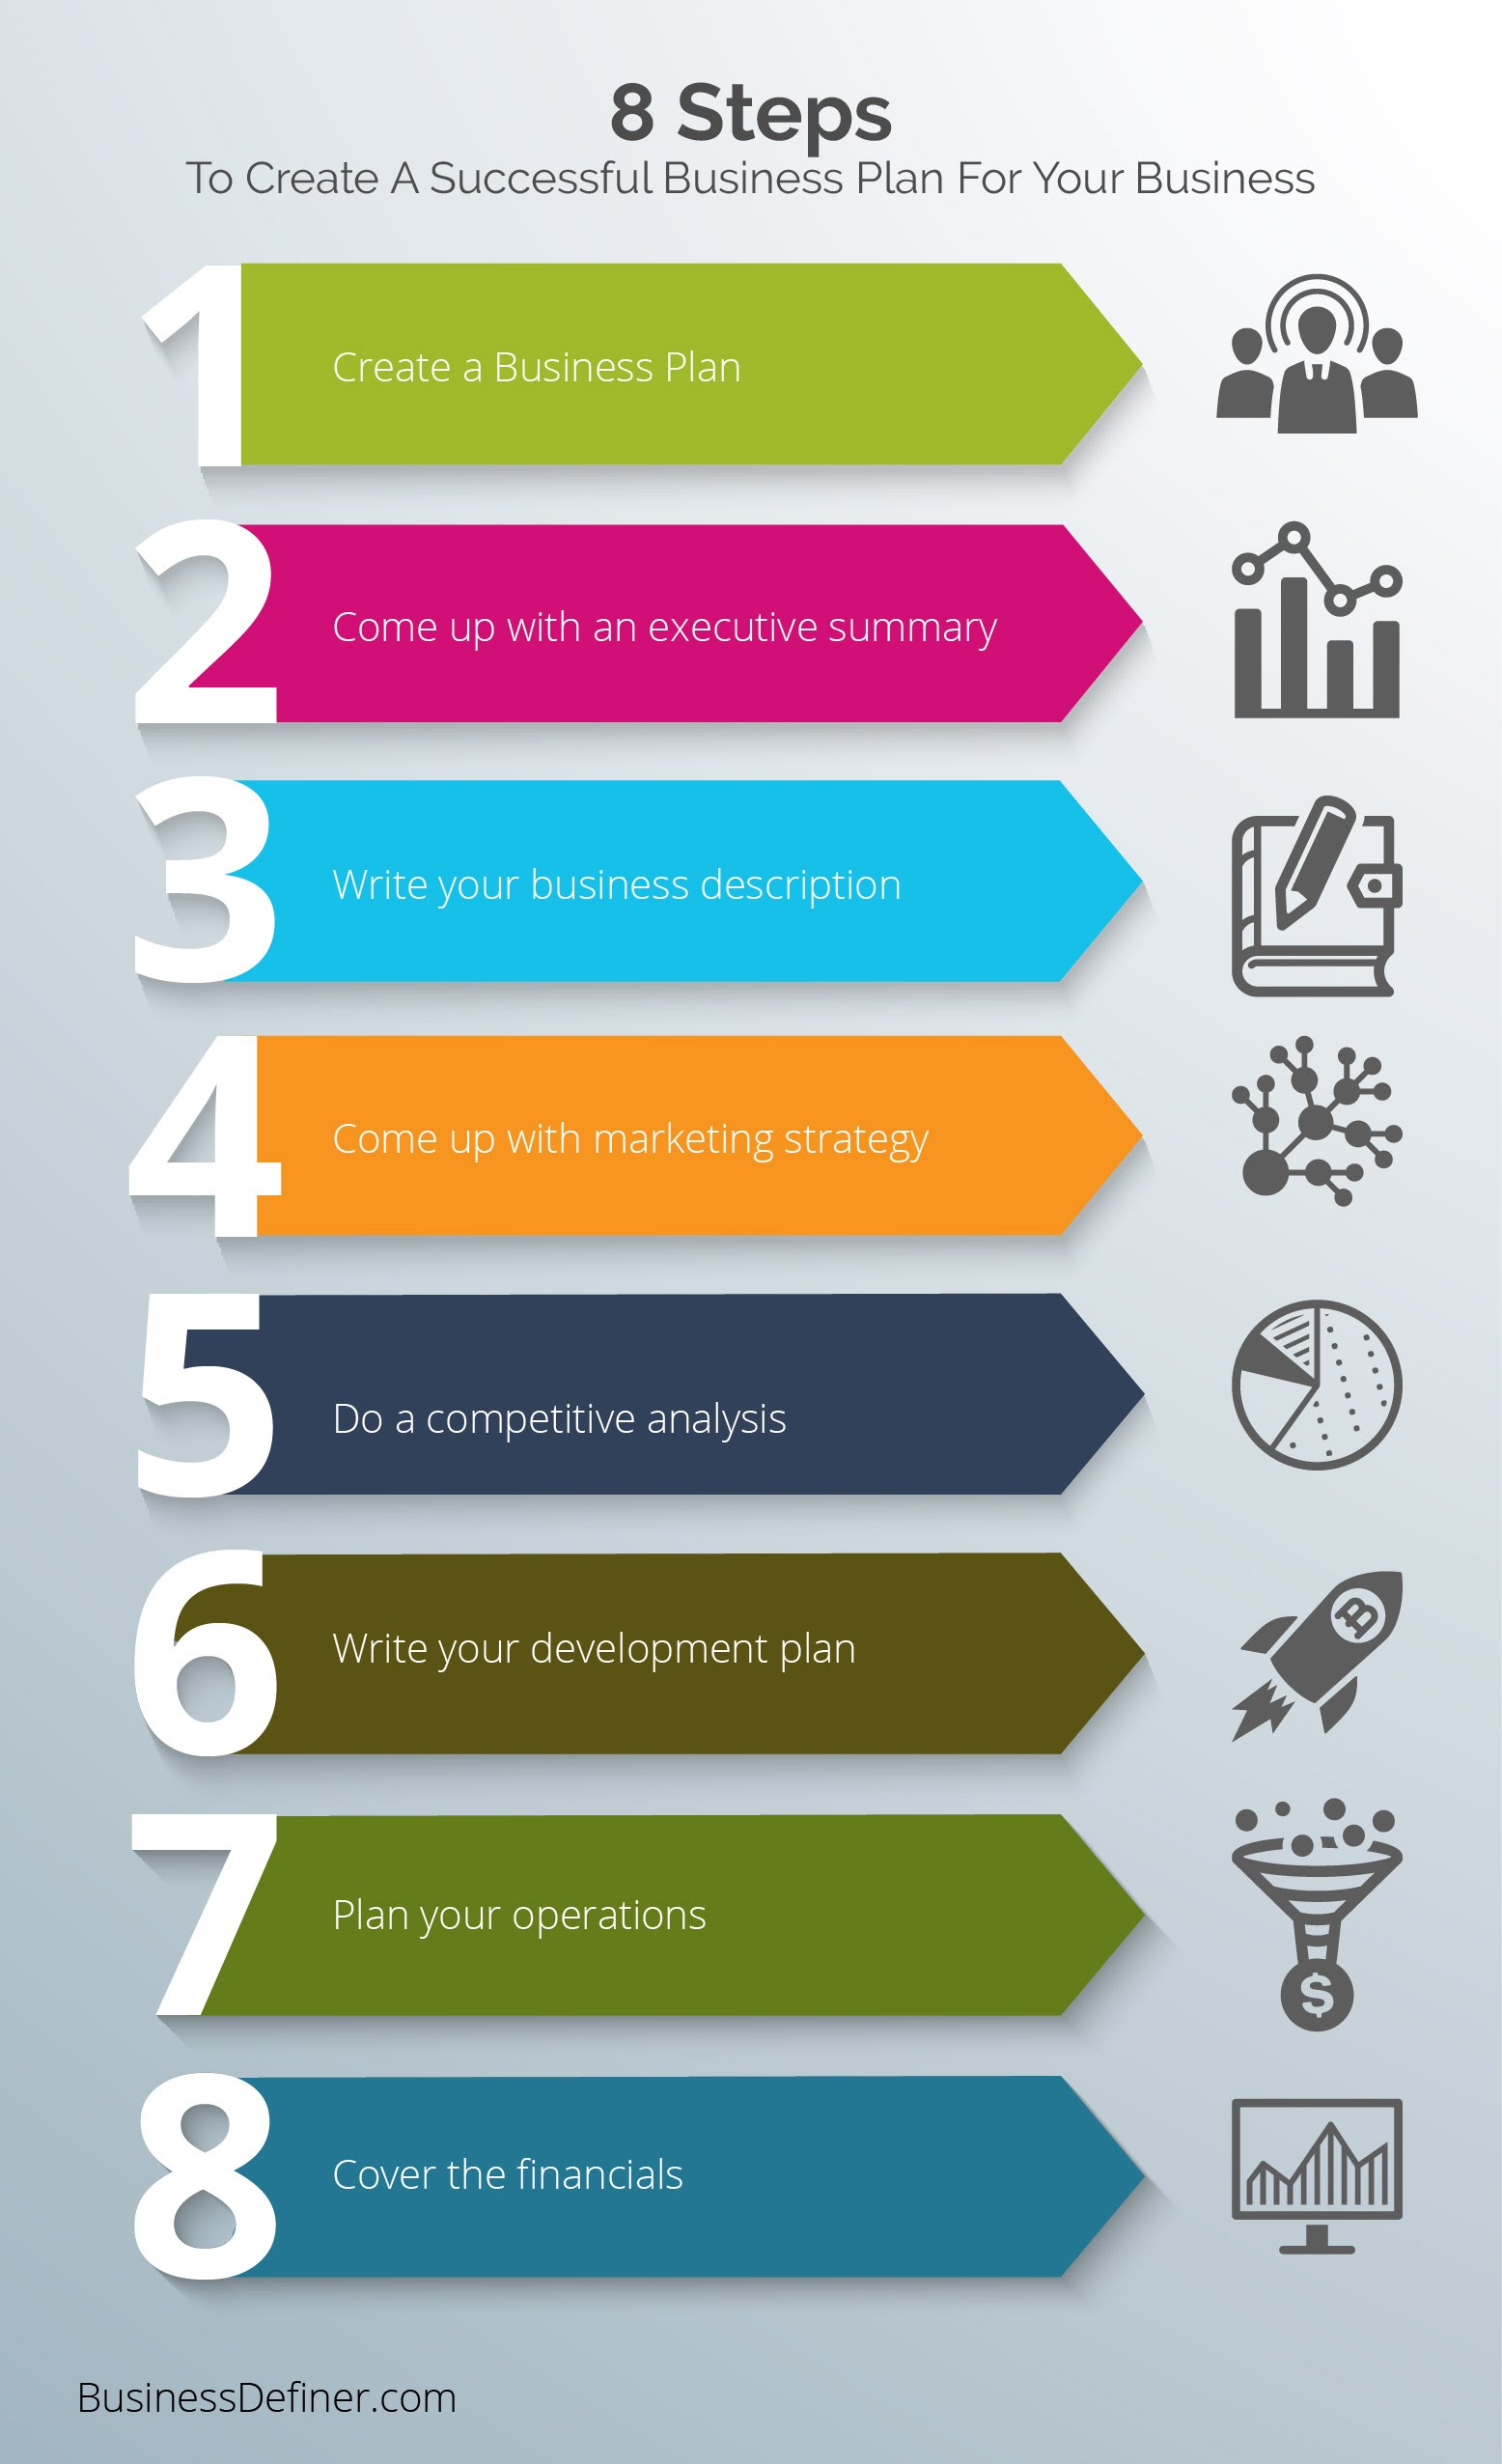 8 Steps To Create A Successful Business Plan Image